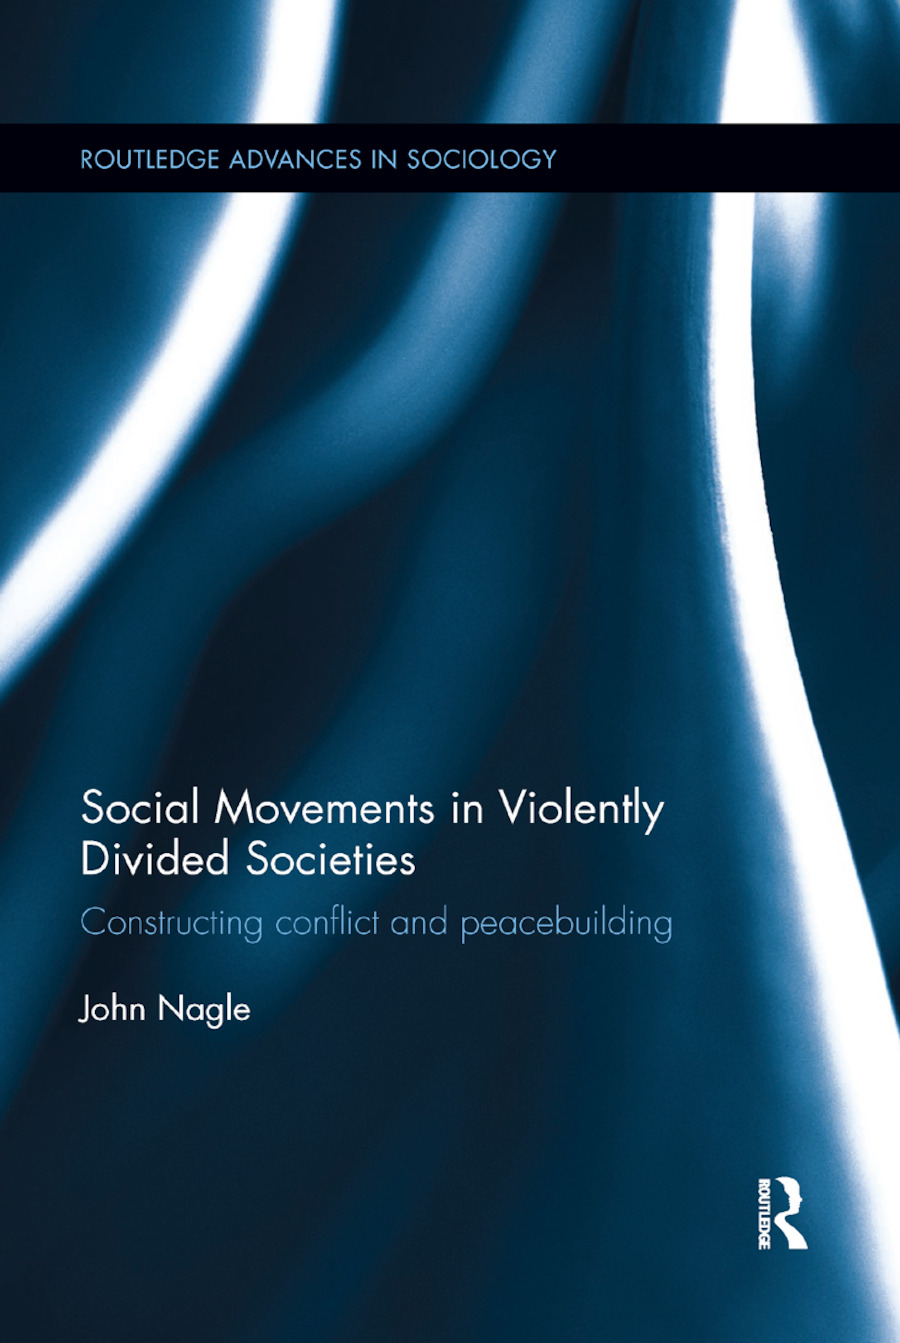 Social Movements in Violently Divided Societies: Constructing Conflict and Peacebuilding book cover